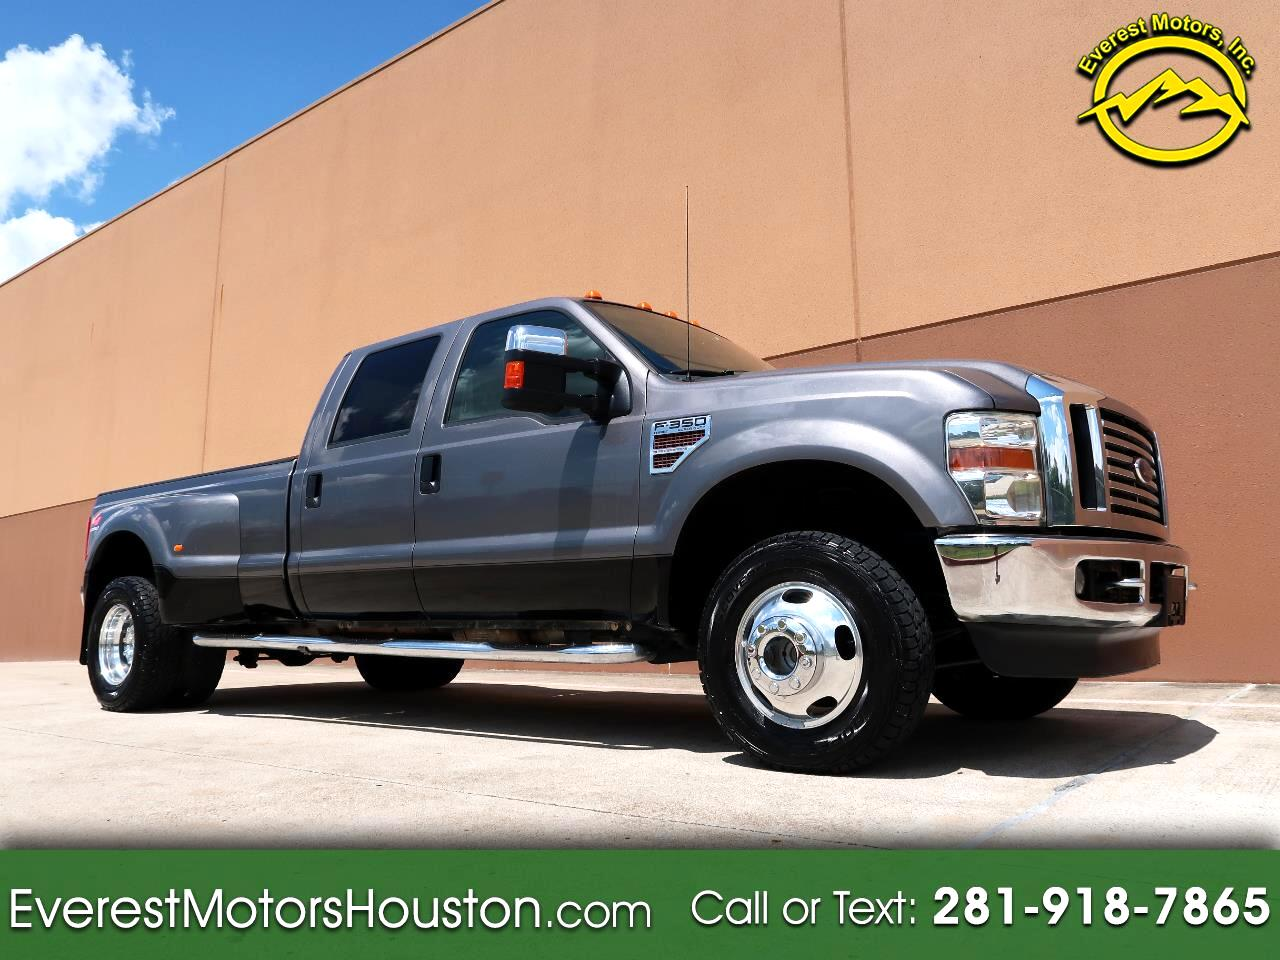 2009 Ford F-350 SD LARIAT CREW CAB LONG BED 4WD DIESEL DRW